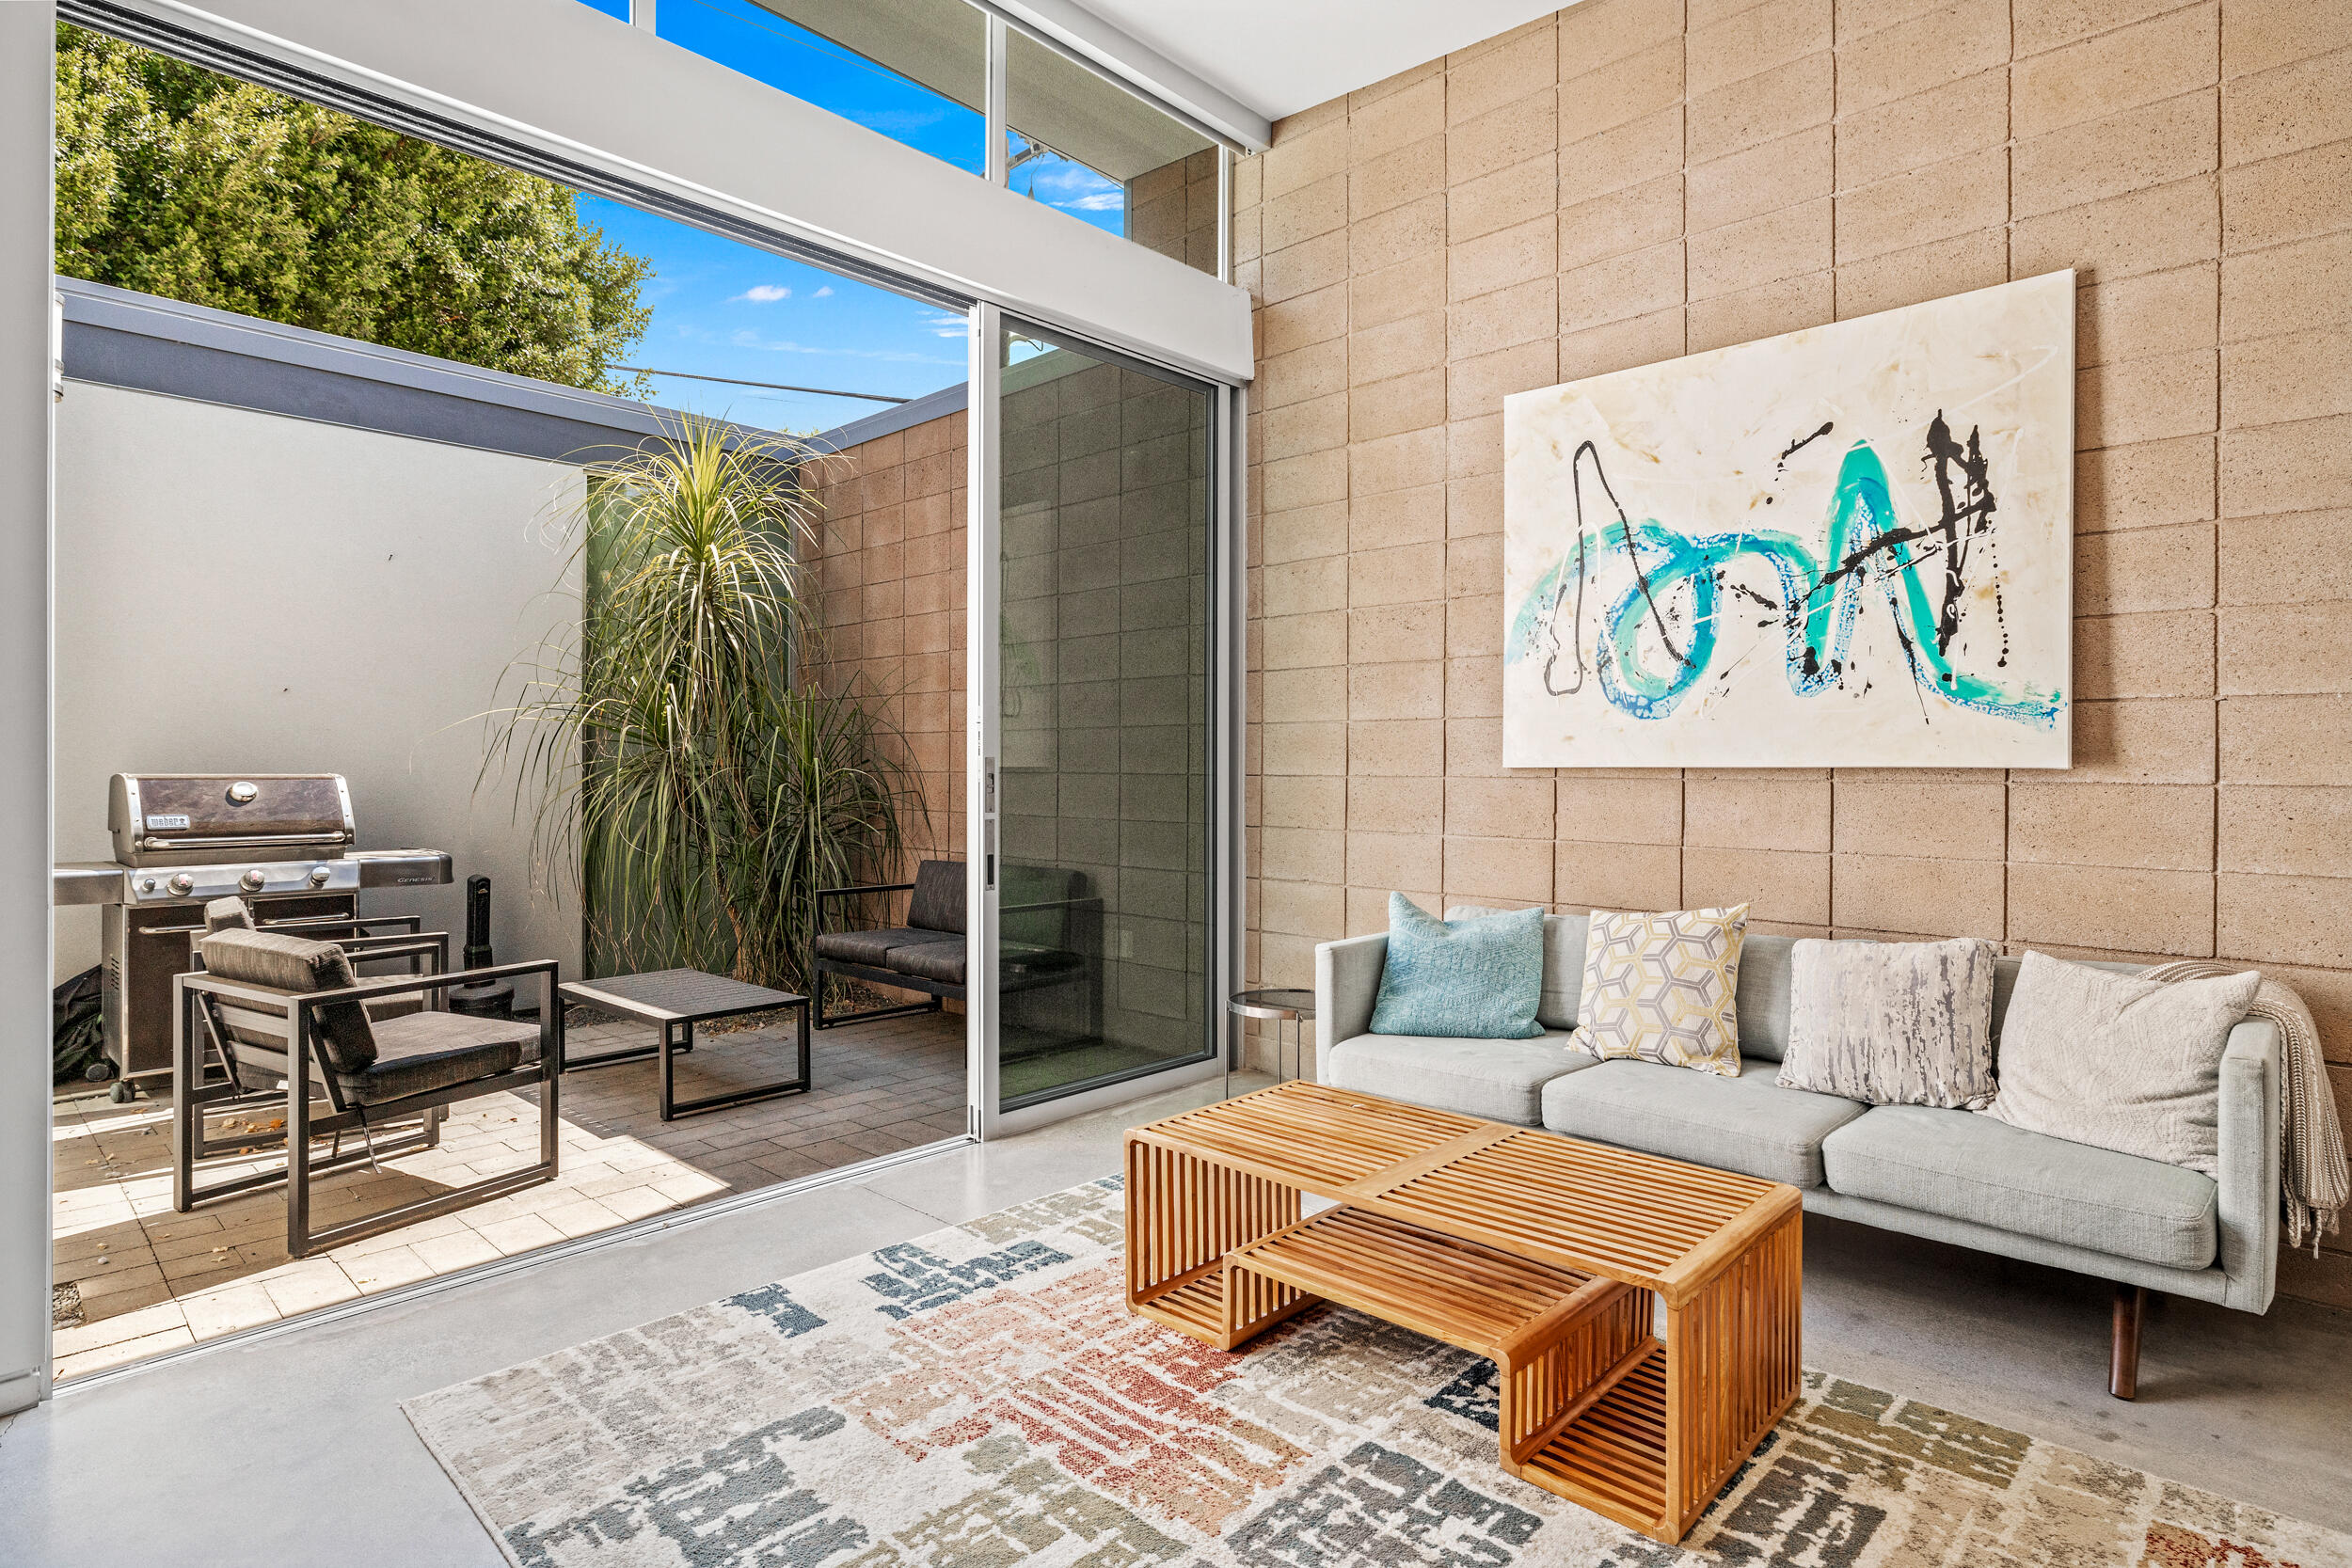 Well, what can I say, yes you CAN have it all! You can live the Desert Lifestyle right on El Paseo in style! This mid-century modern masterpiece is now offered individually for sale at an amazingly competitive price! Don't miss your chance to be the first to see this impeccable 2 bedroom 2 bath condo with a spa in the backyard. You will love the modern feel throughout, and the open floor plan where the living room and kitchen are combined. Amazing value, especially since this unit comes FURNISHED per inventory list! Reach out ASAP for more information. This will not last!